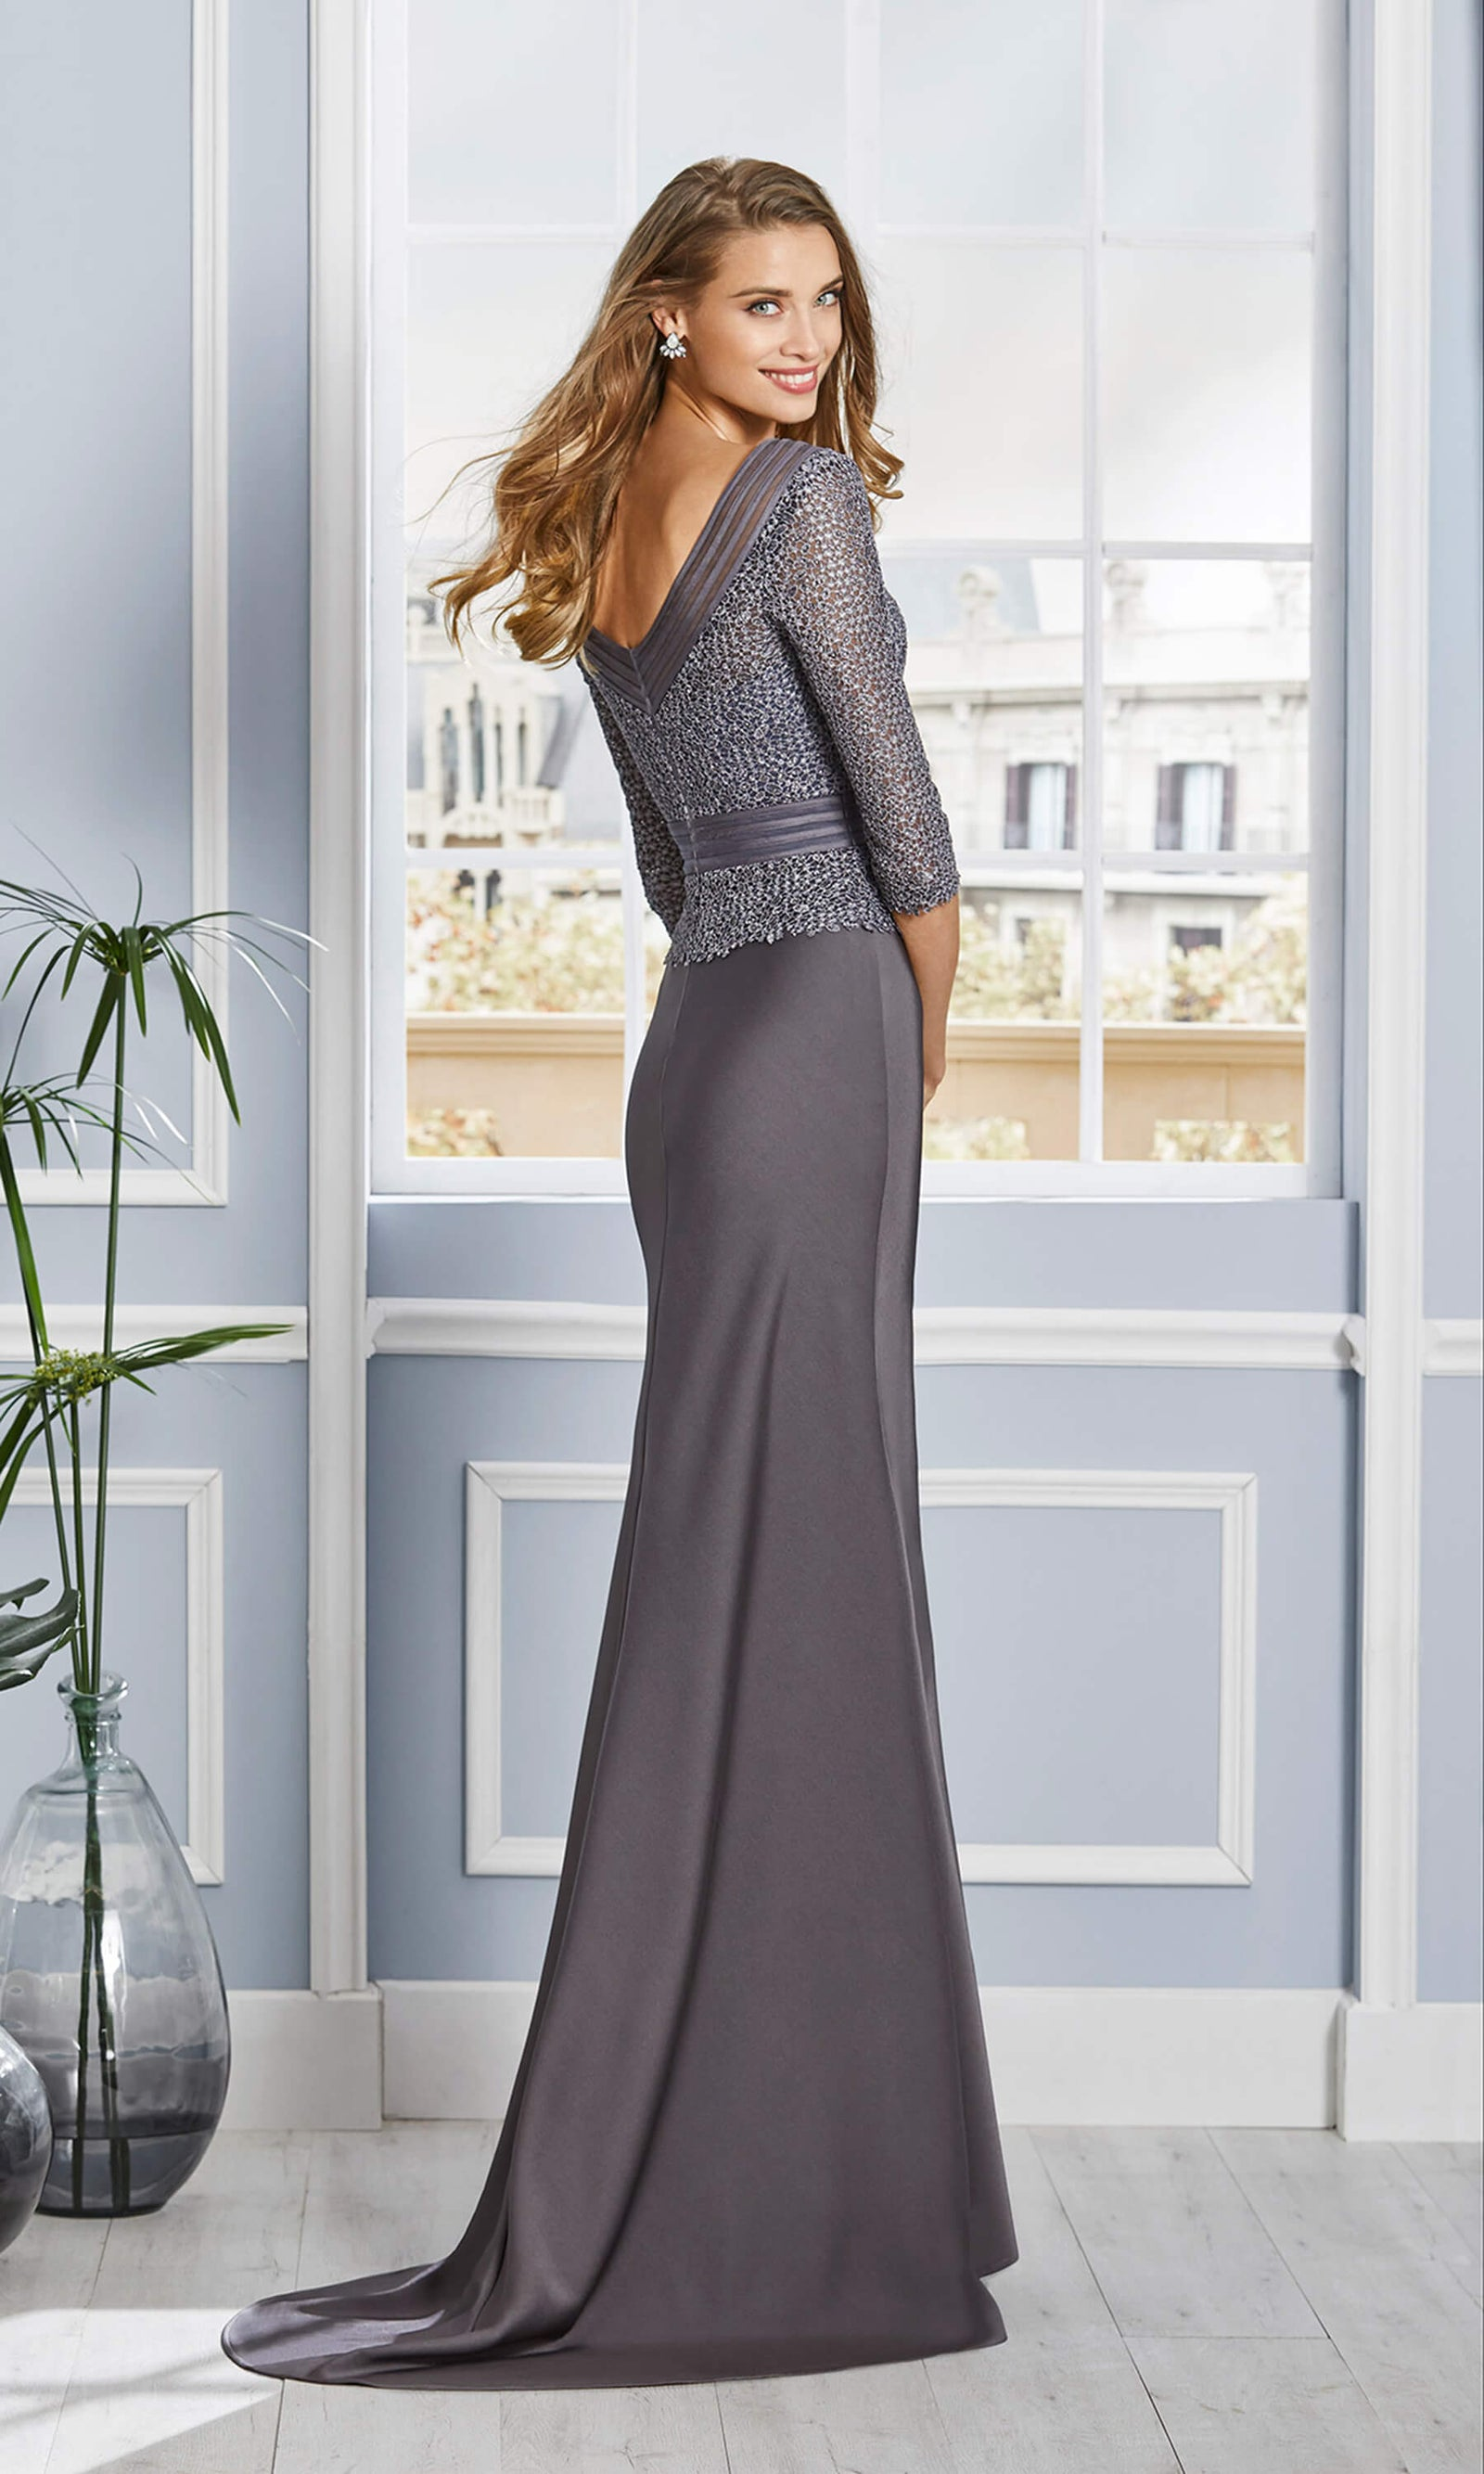 4G119 Smoke Grey Couture Club Evening Dress With Sleeves